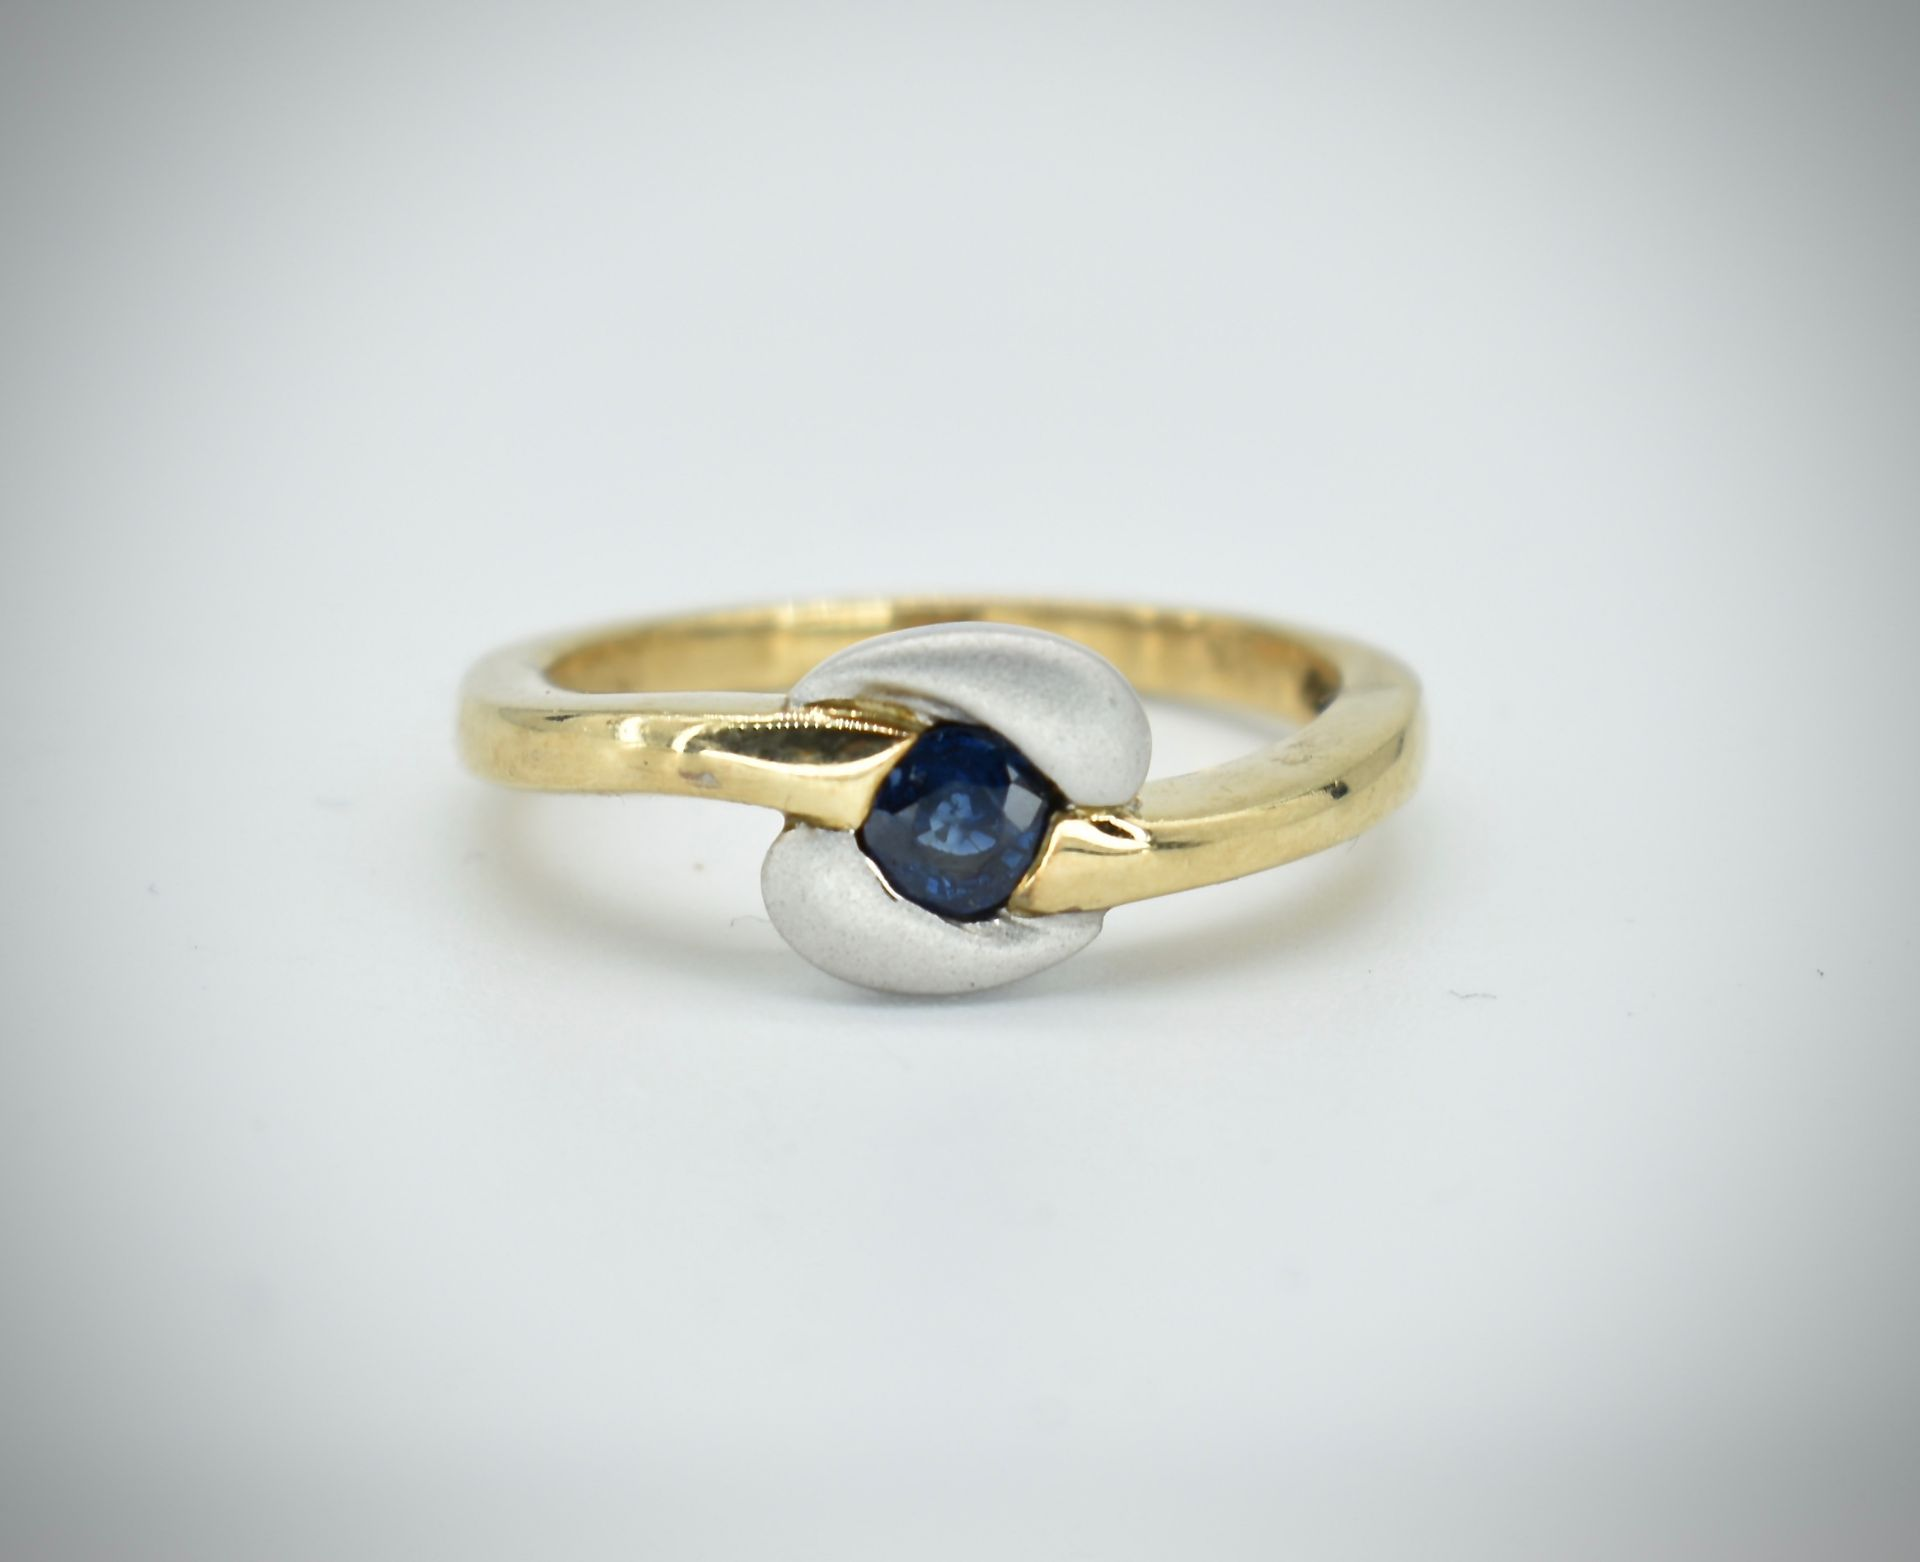 9ct Gold & Sapphire Ring - Image 5 of 5